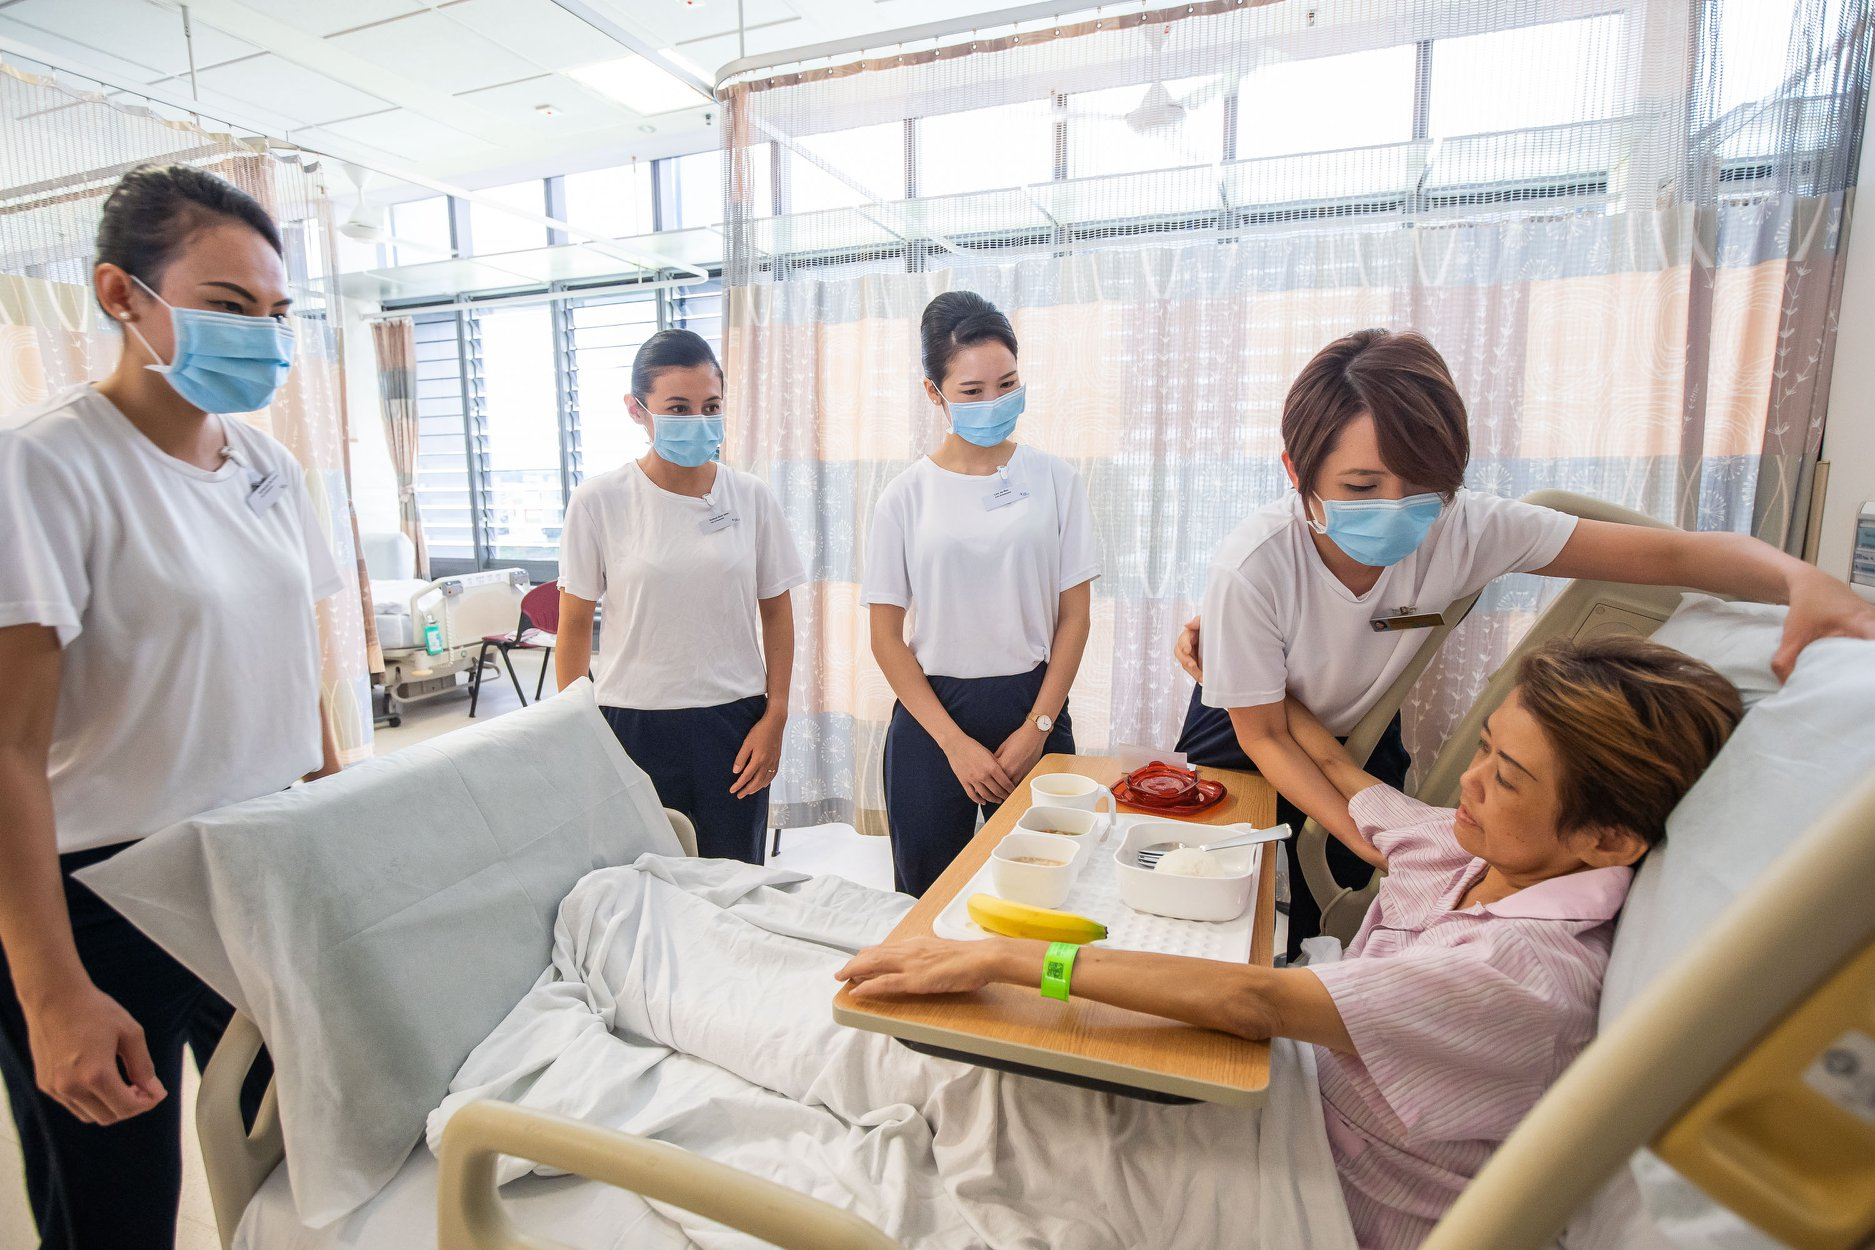 The role of the Patient Care Officers (PCO) was inspired by the Care Ambassadors programme that Singapore Airlines (SIA) and Khoo Teck Puat Hospital (KTPH) jointly launched in April. Photo courtesy: SIA